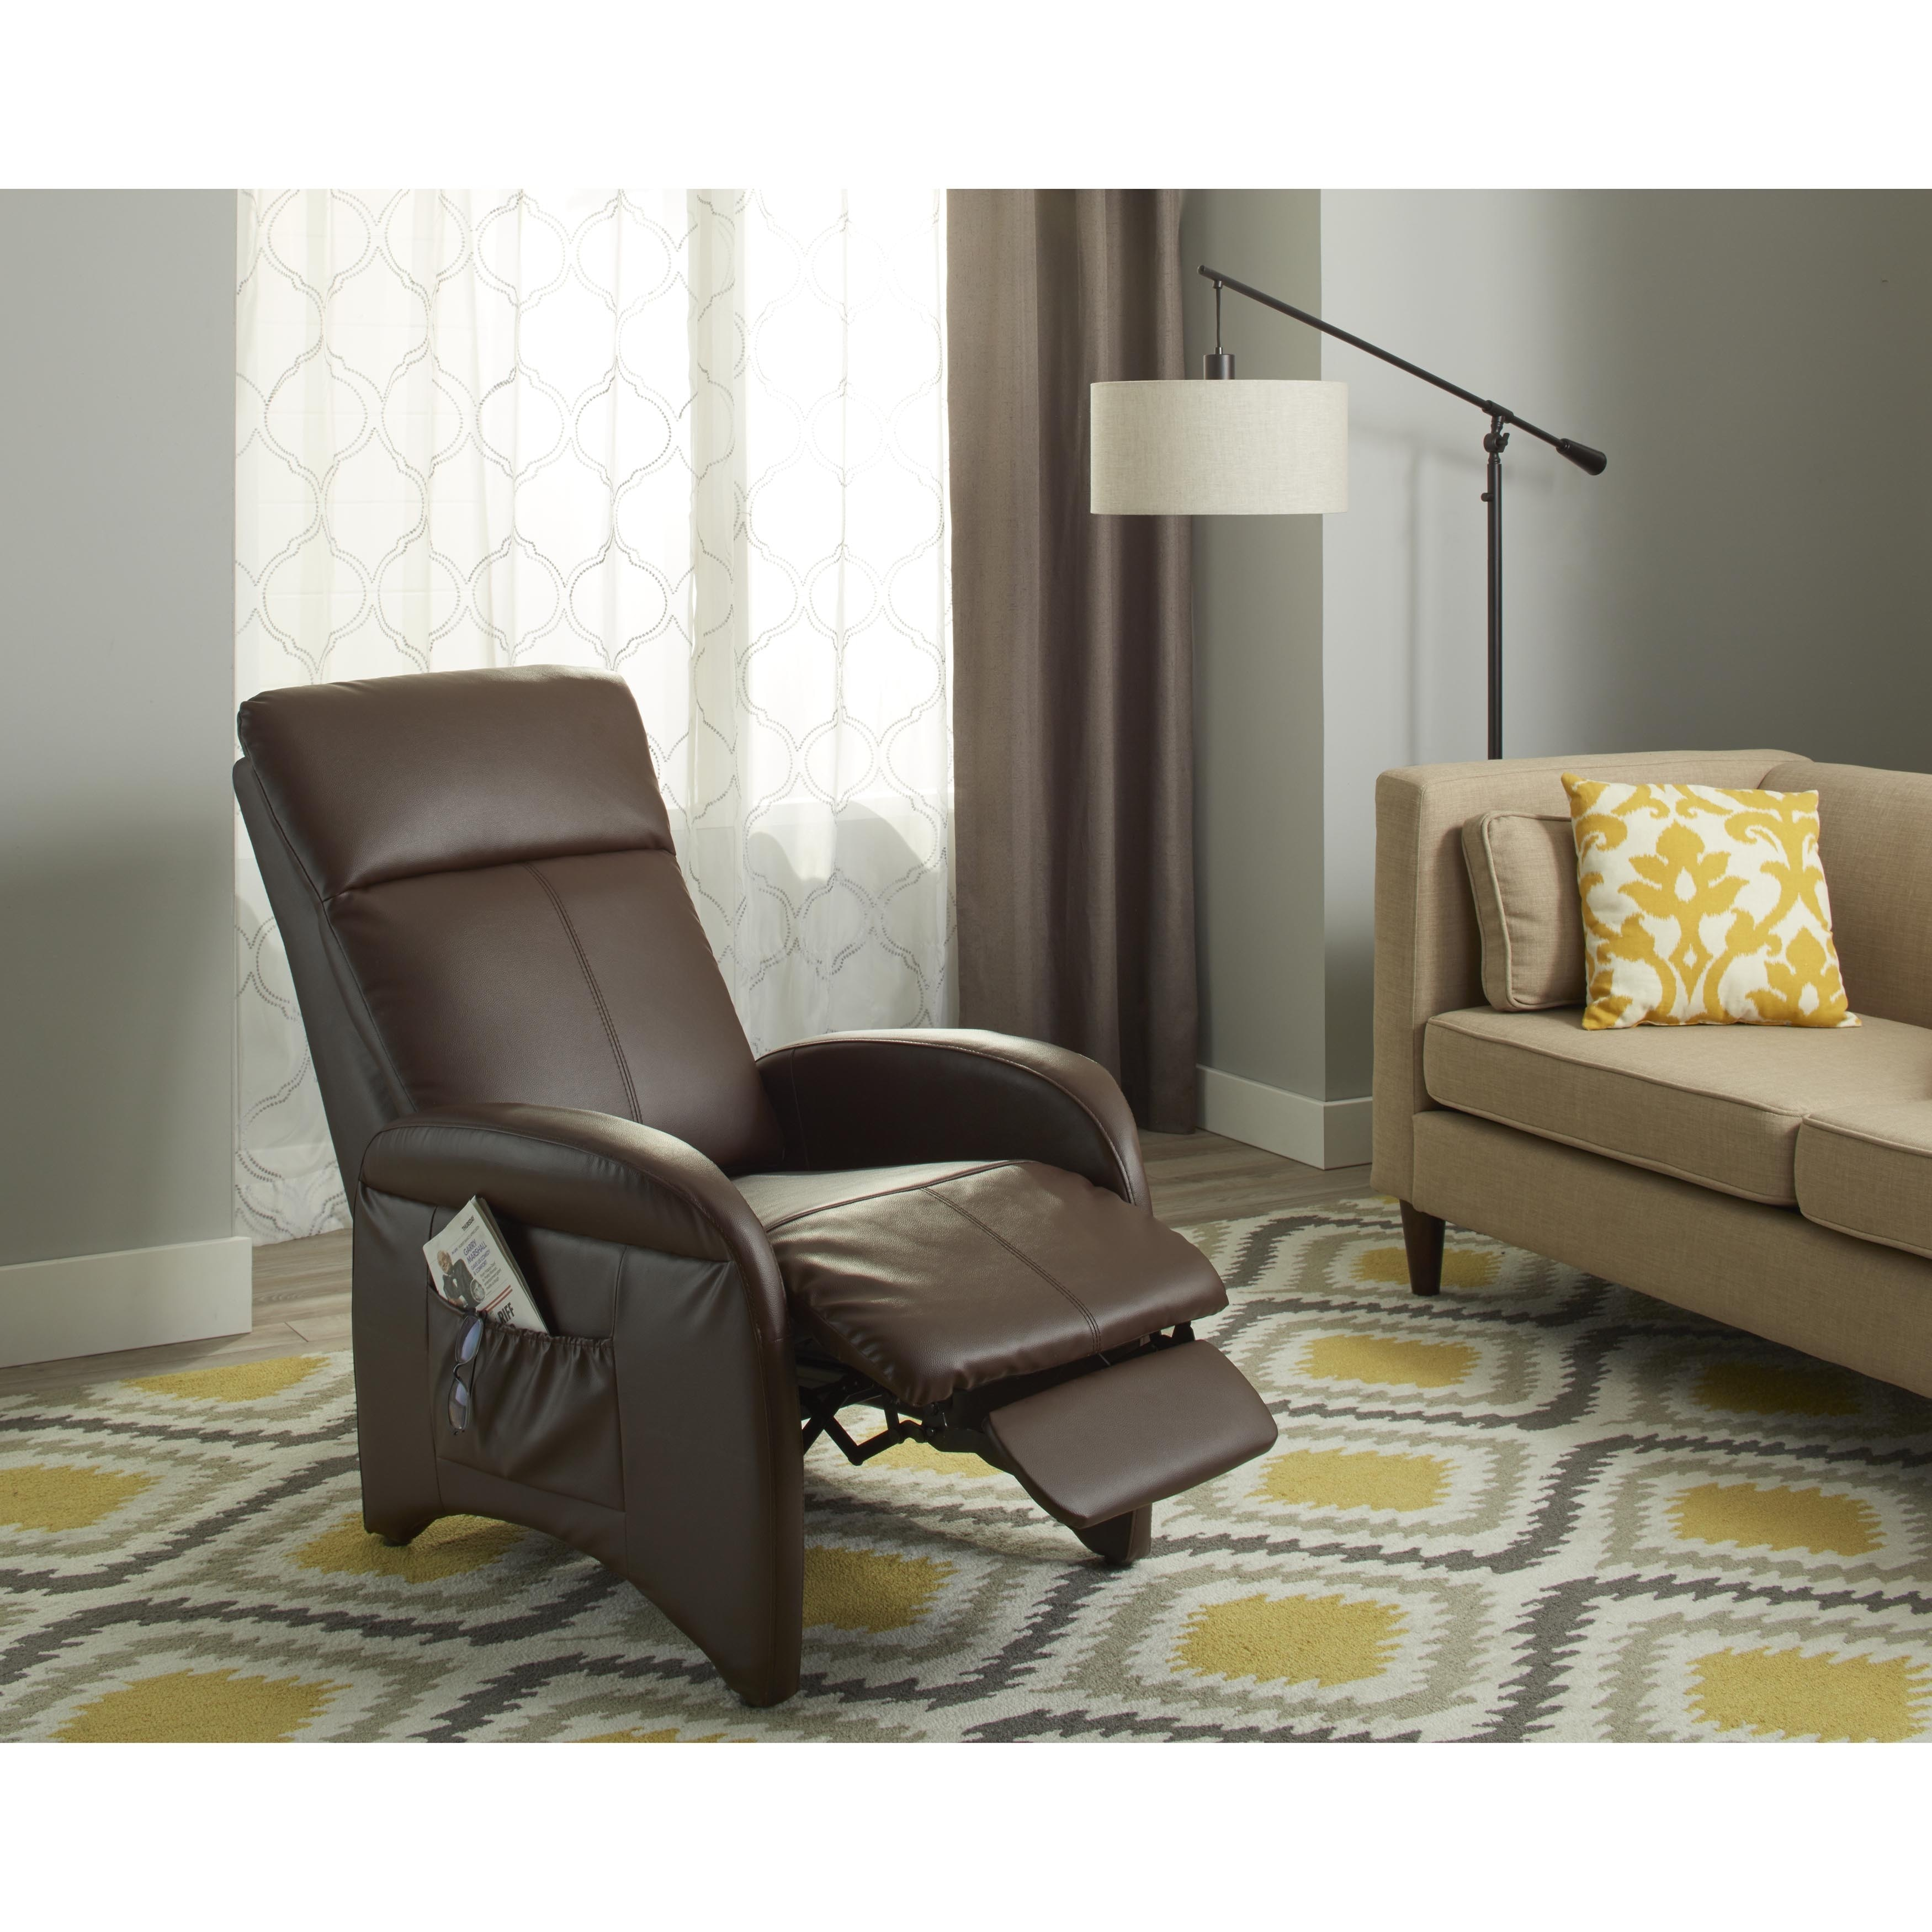 accent chair recliner cushions for metal folding chairs shop simple living addin small reclining on sale free shipping today overstock com 4692753